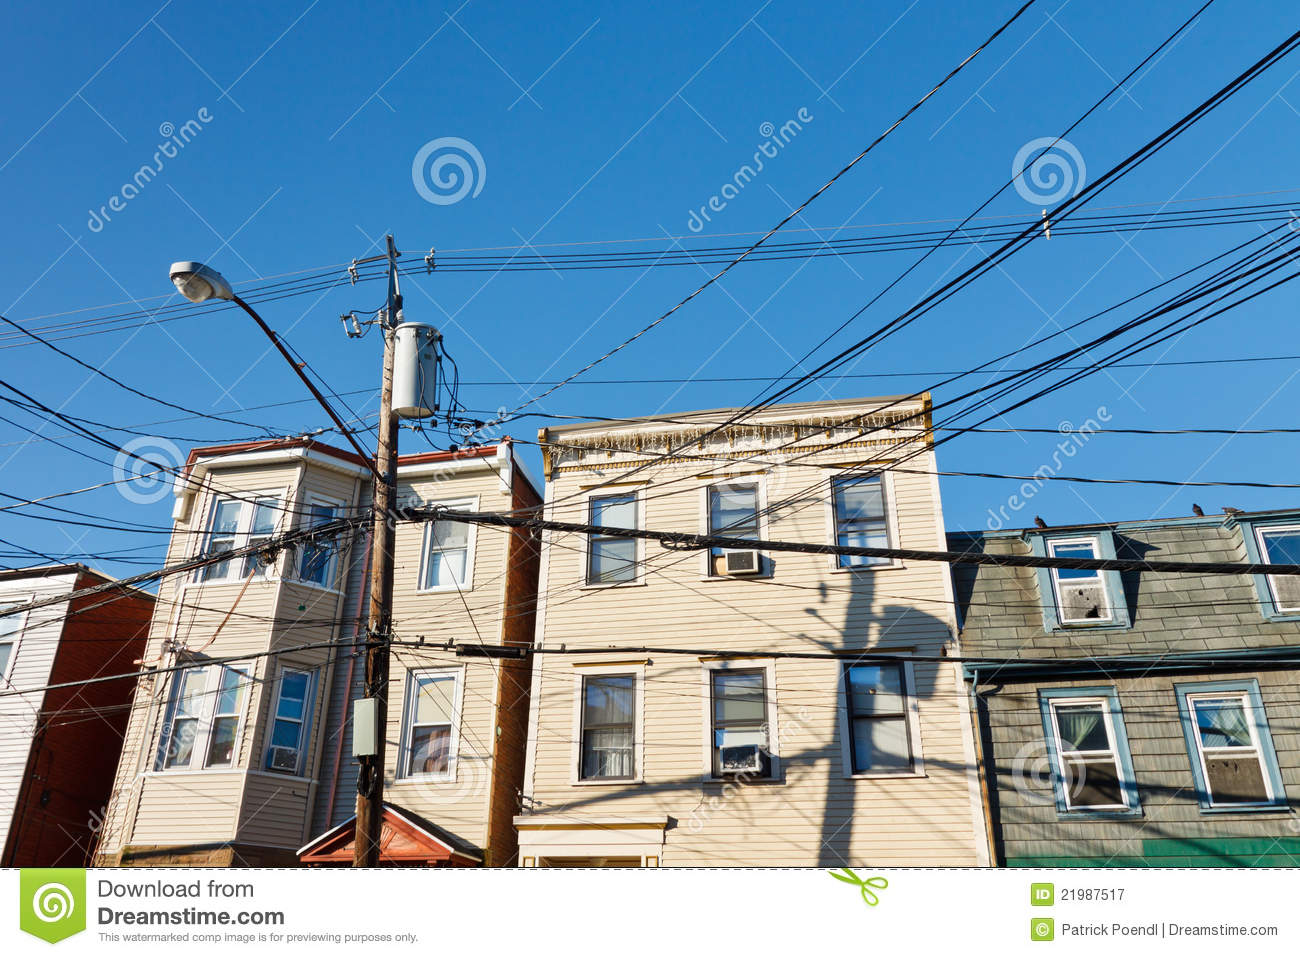 Chaotic Electric Wiring stock image. Image of politics - 21987517